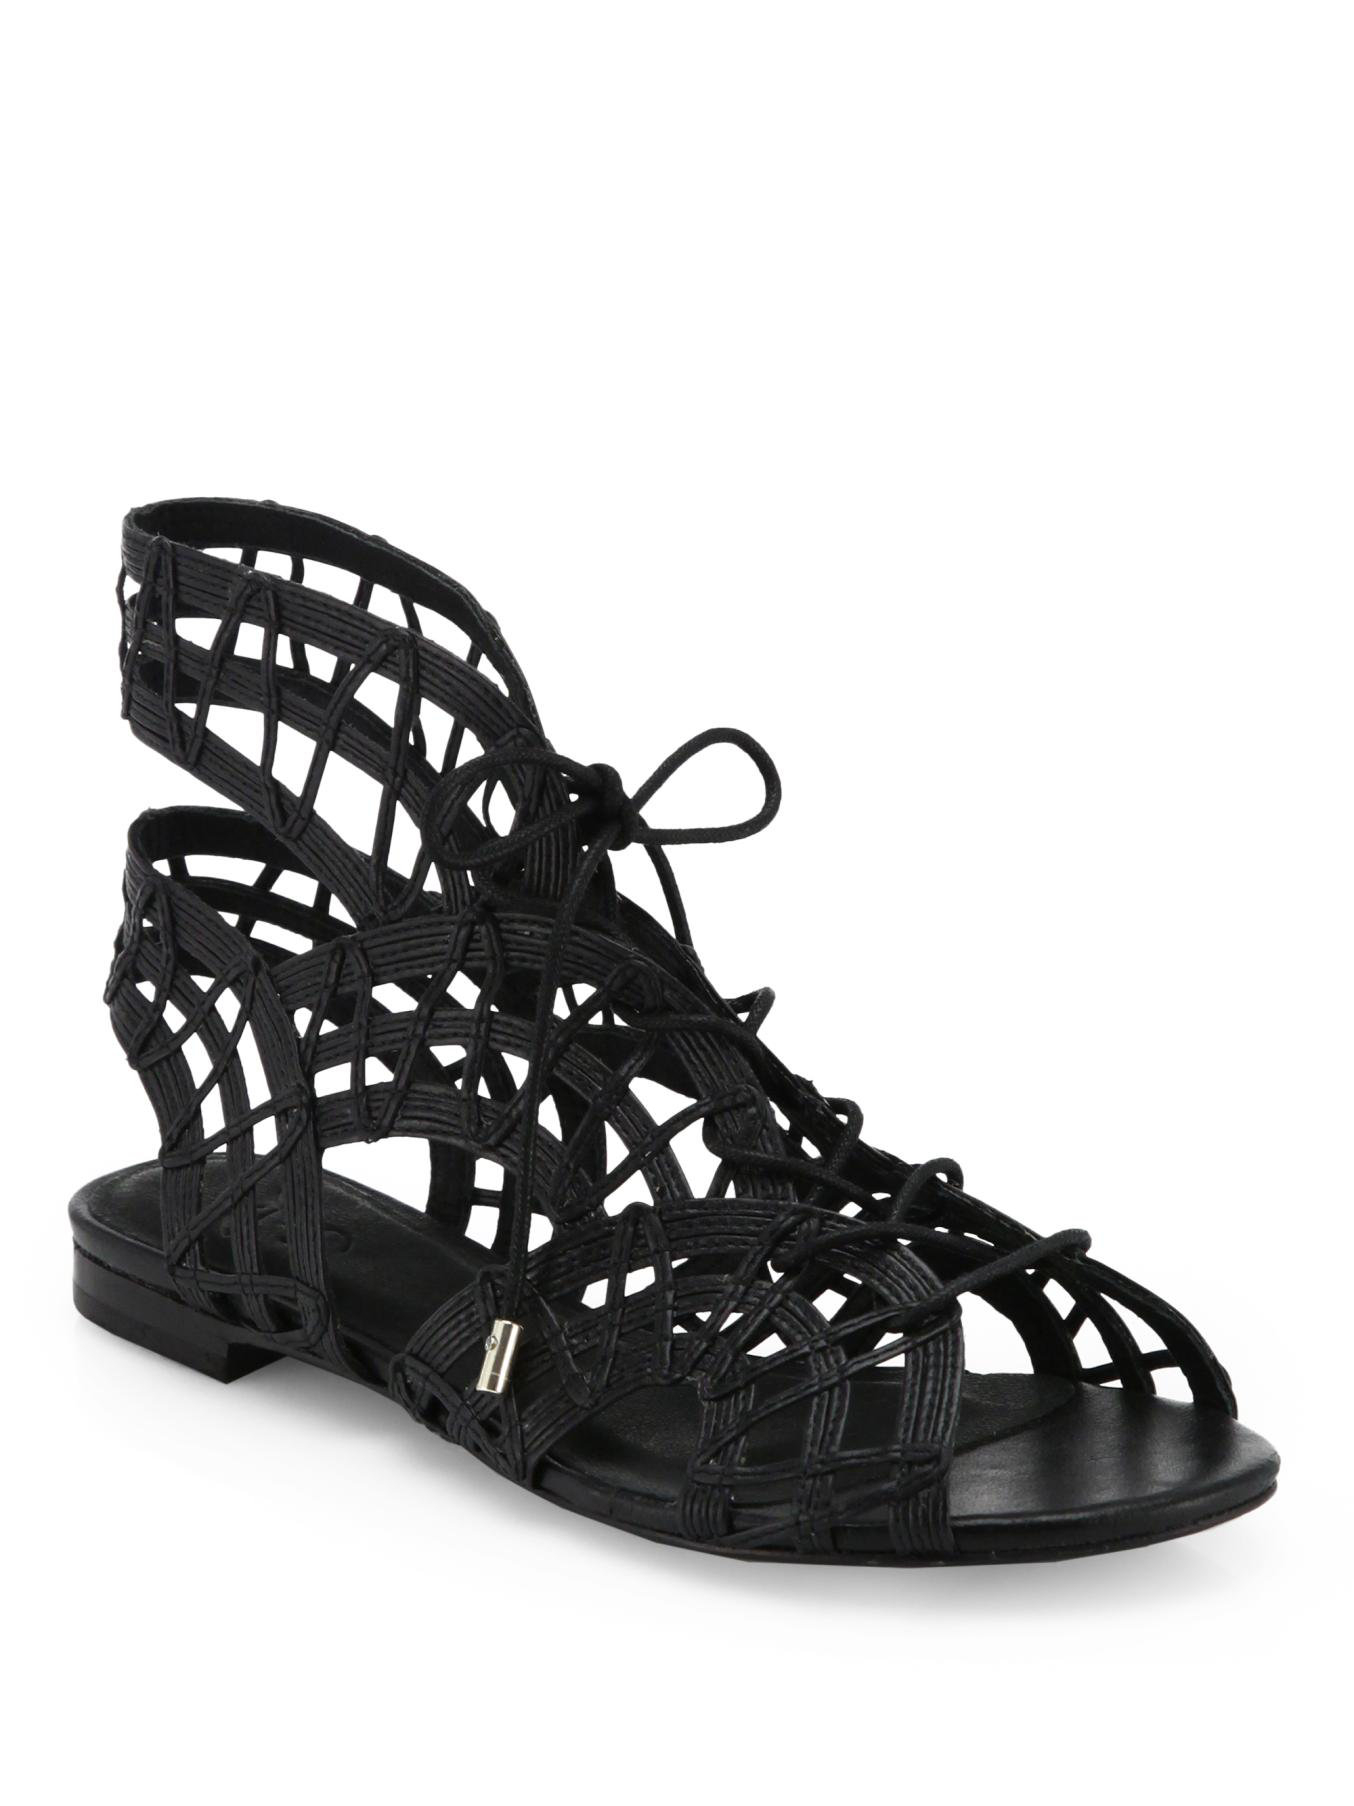 1c971f55cb38 Lyst - Joie Renee Caged Leather Gladiator Sandals in Black